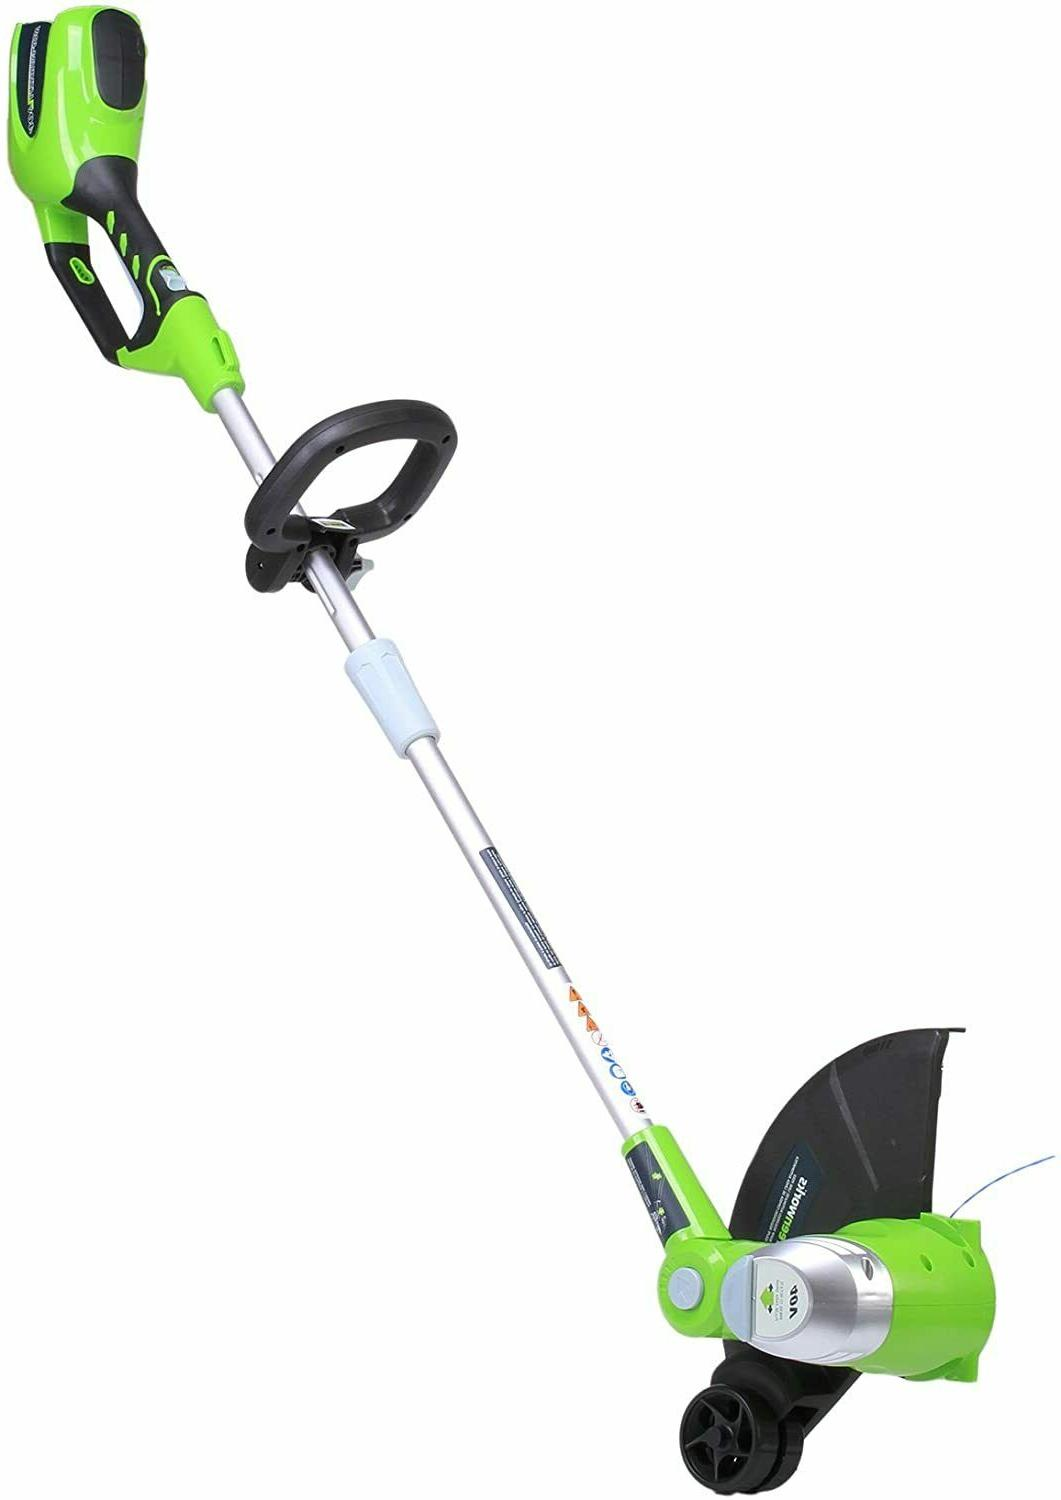 Cordless Trimmer Weed Eater 40V Only